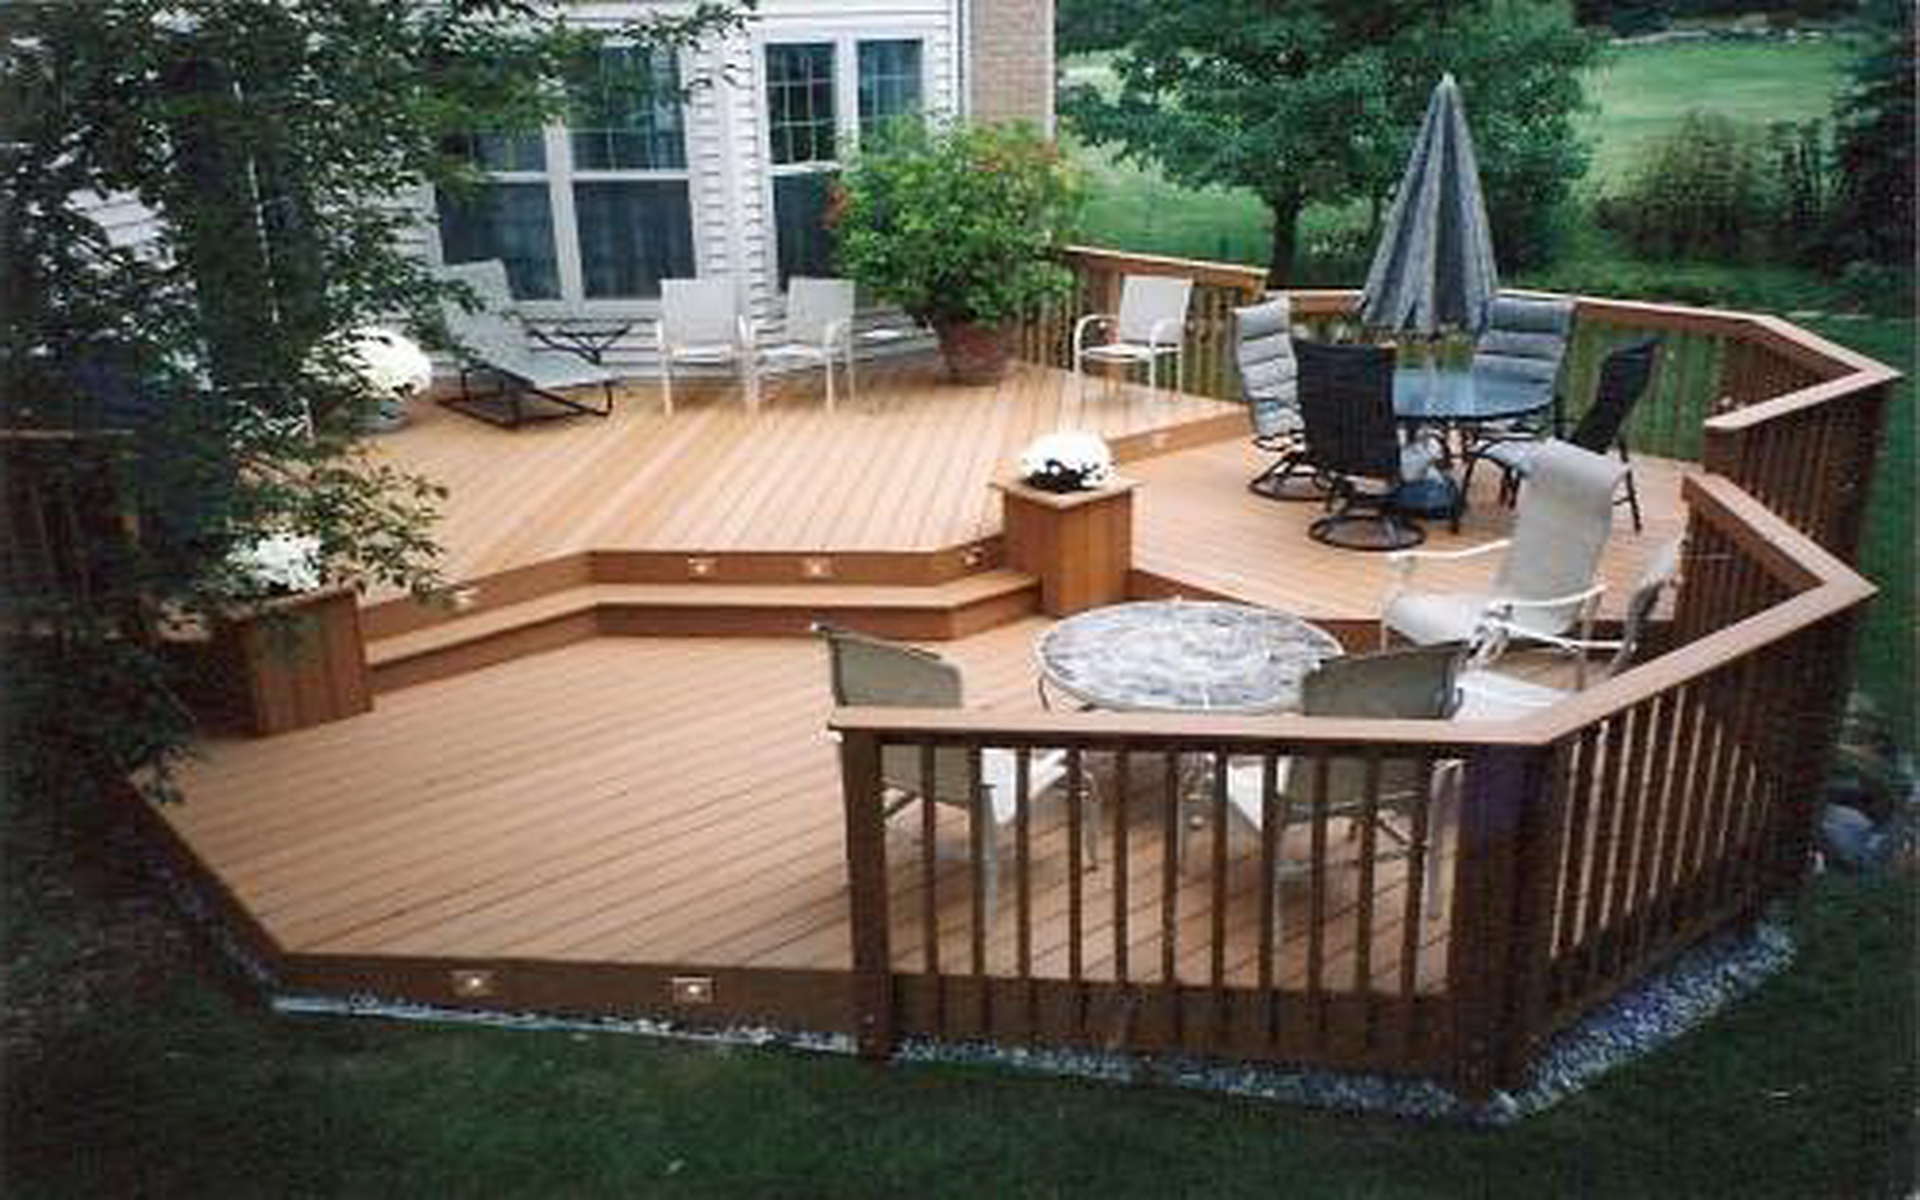 Wood deck ideas fancy backyard decks decking for back garden view in gallery wooden decks for small backyards baanklon Images